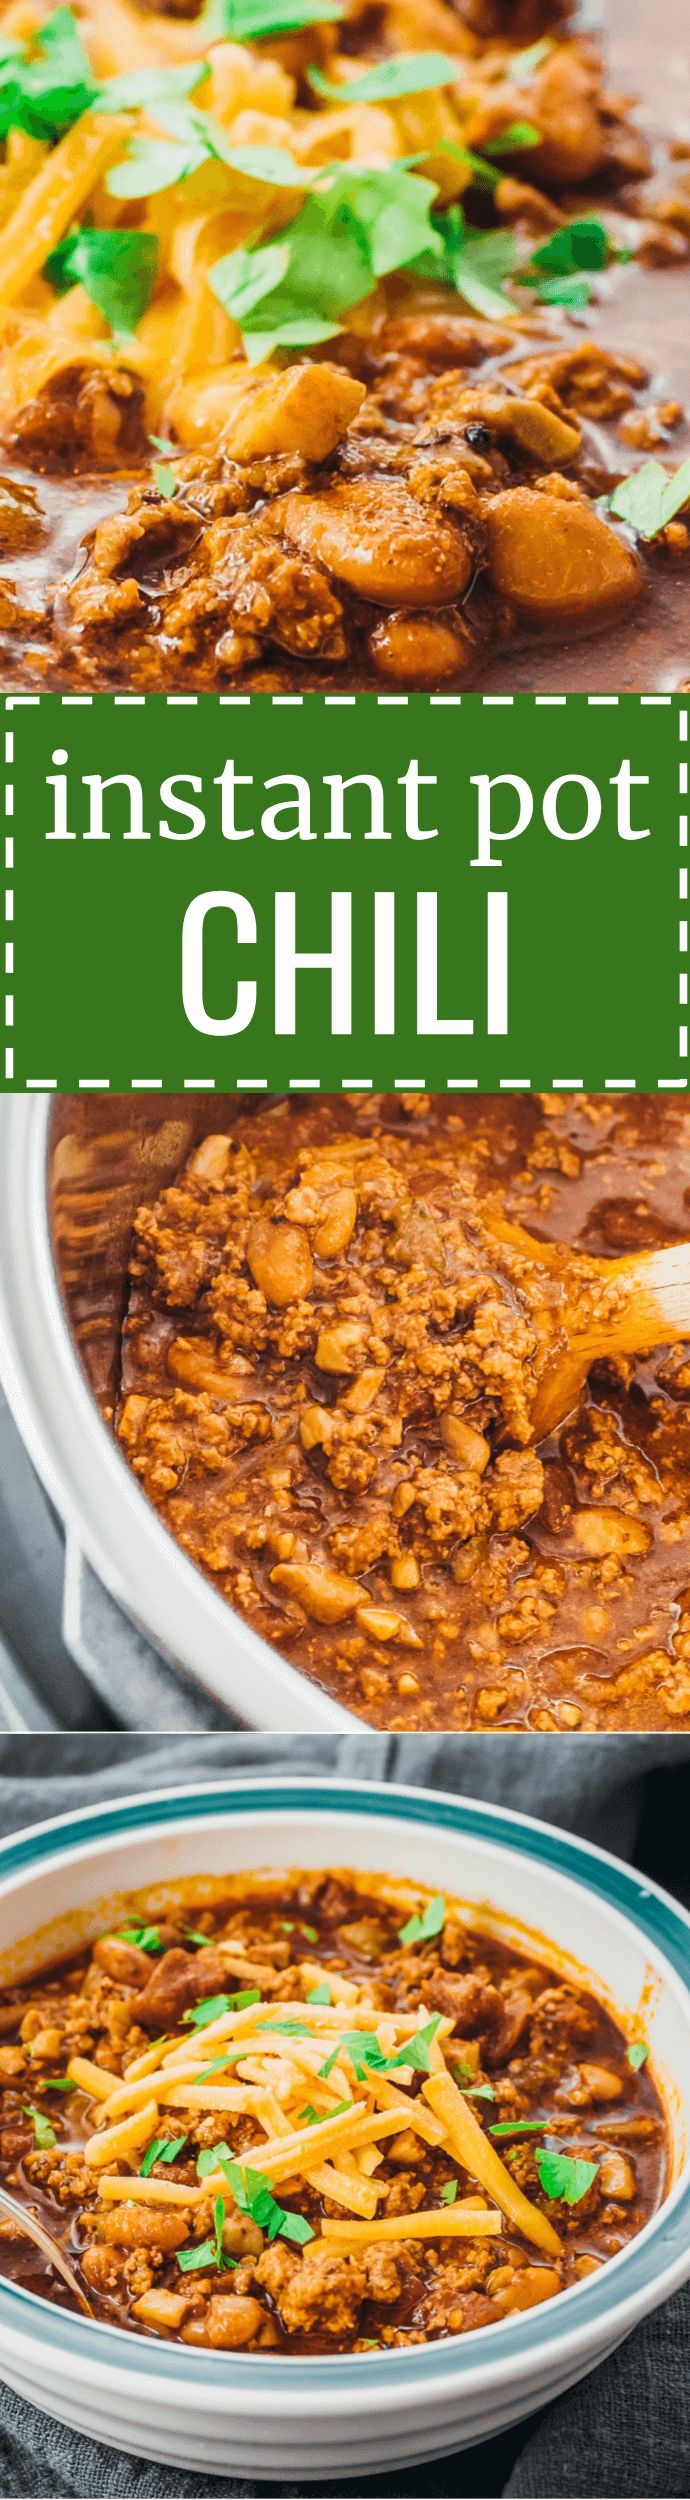 An easy, homemade, low carb chili recipe with ground beef made using the Instant Pot pressure cooker. keto / beans / families / comfort foods / cooking / con carne / spicy / from scratch / best / seasoning / diet / atkins / induction / meals / recipes / easy / dinner / lunch / foods / healthy / gluten free / recipe / cheese / award winning / quick / simple / classic / sides / sauce / party / toppings / ideas #instantpot #chili #lowcarb via @savory_tooth